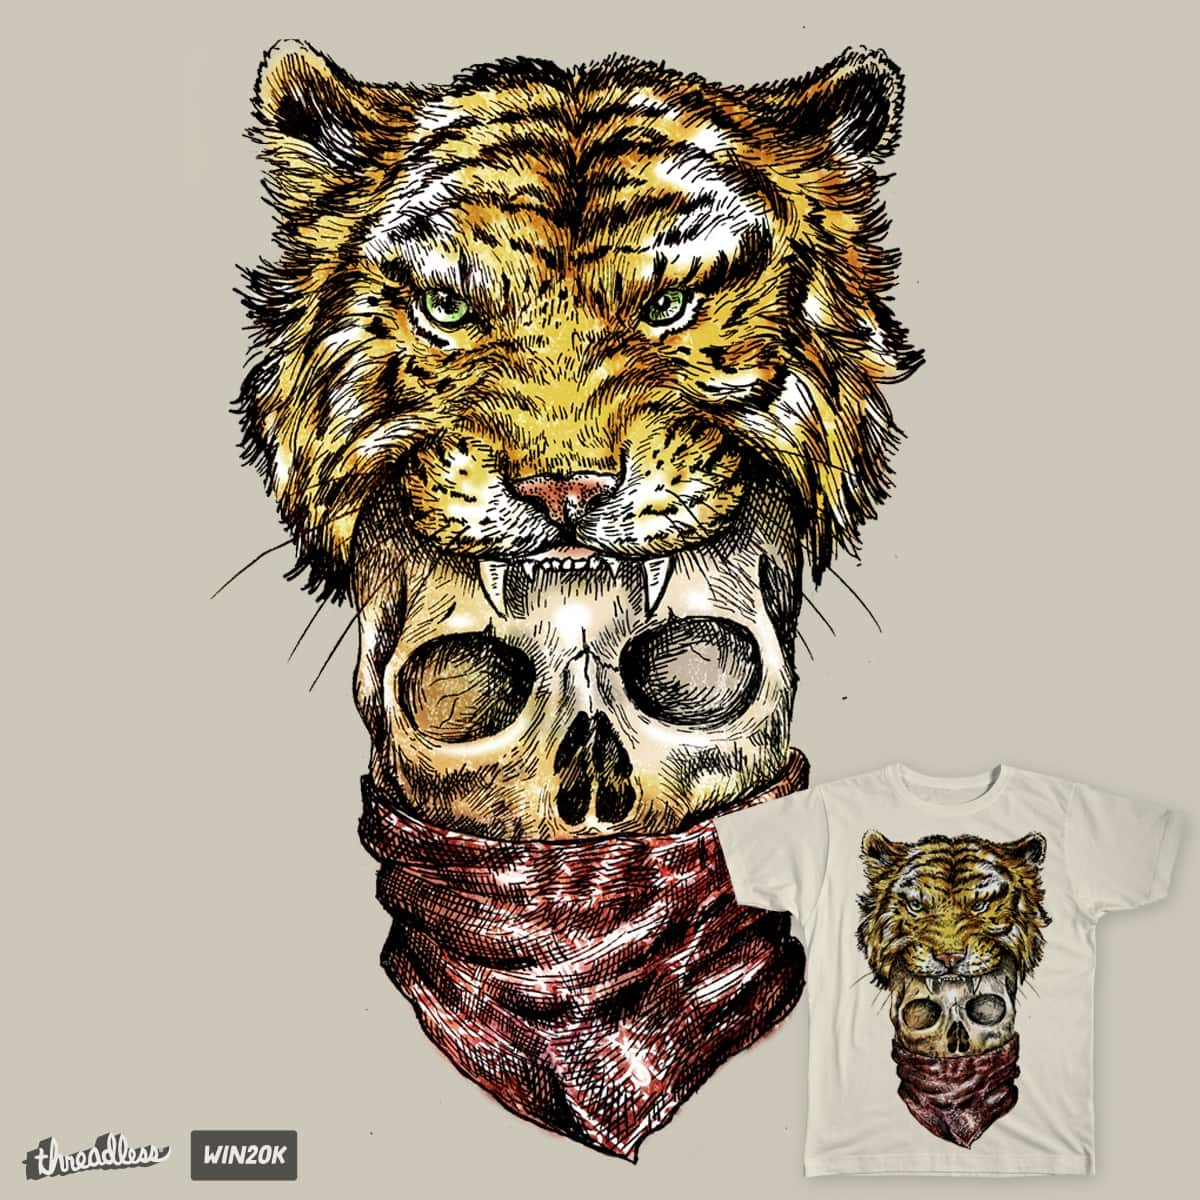 gangster by dick82 on Threadless